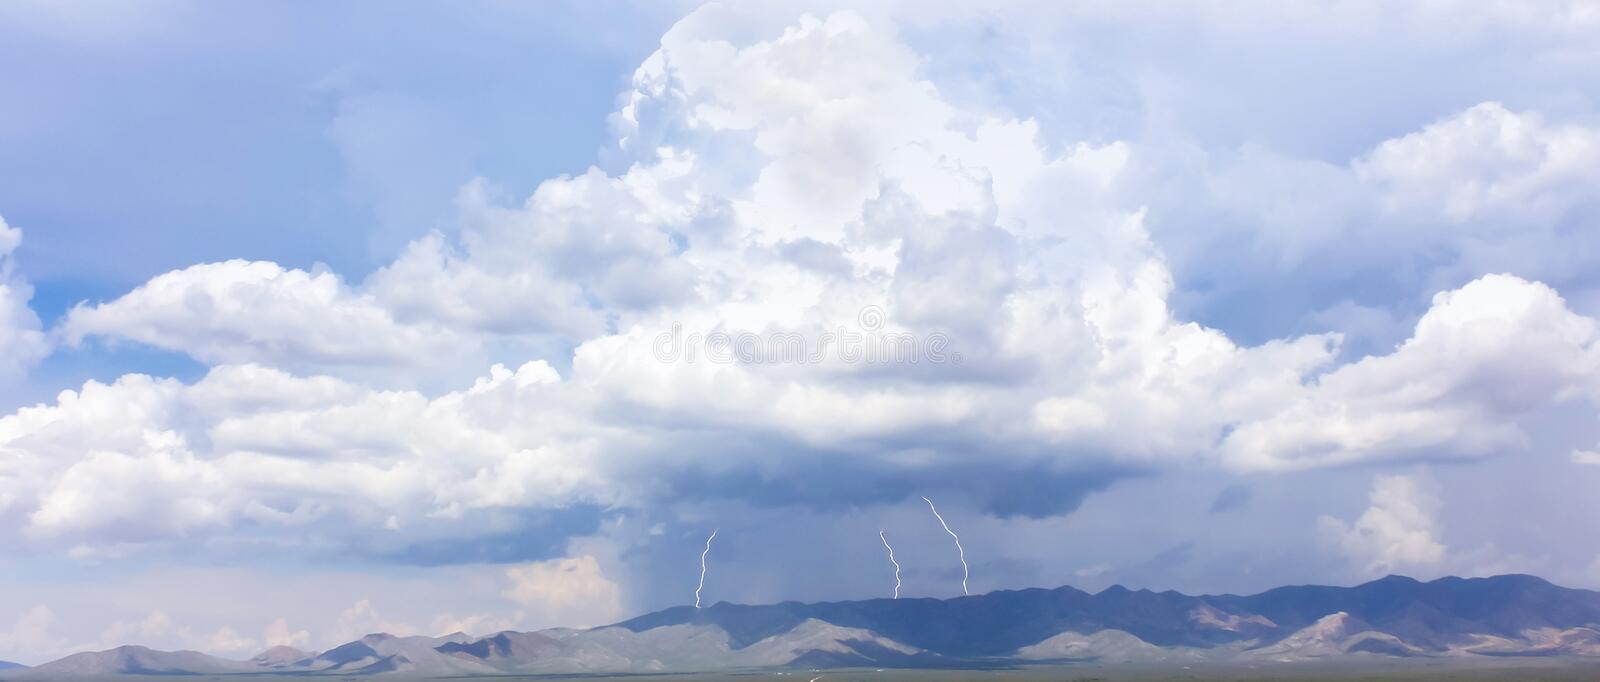 A Trio of Lightning Bolts in the Mountains stock image